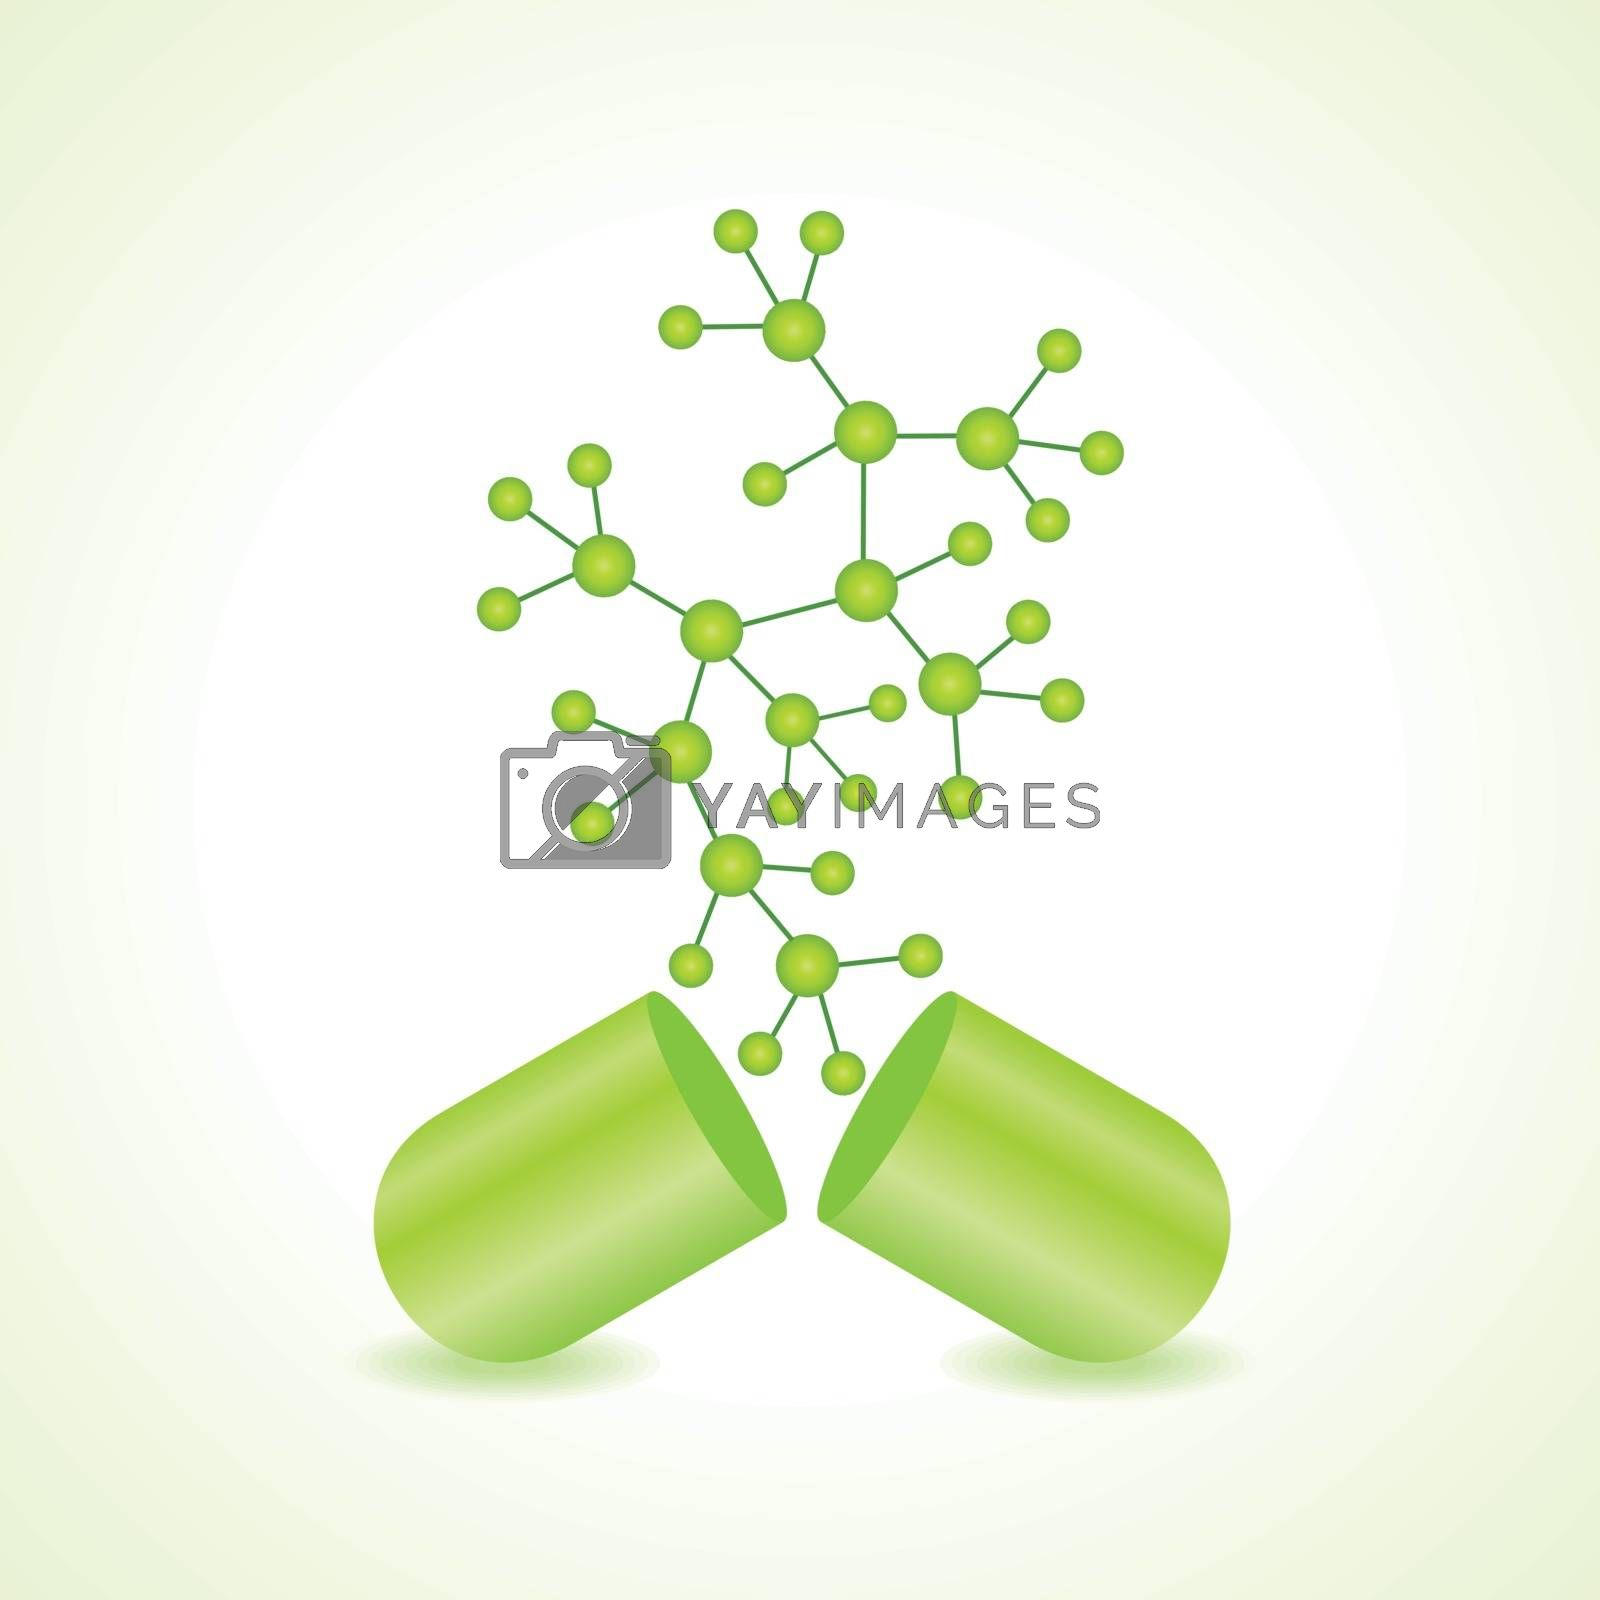 3d eco chemical atomic structure molecule model with capsule vector illustration